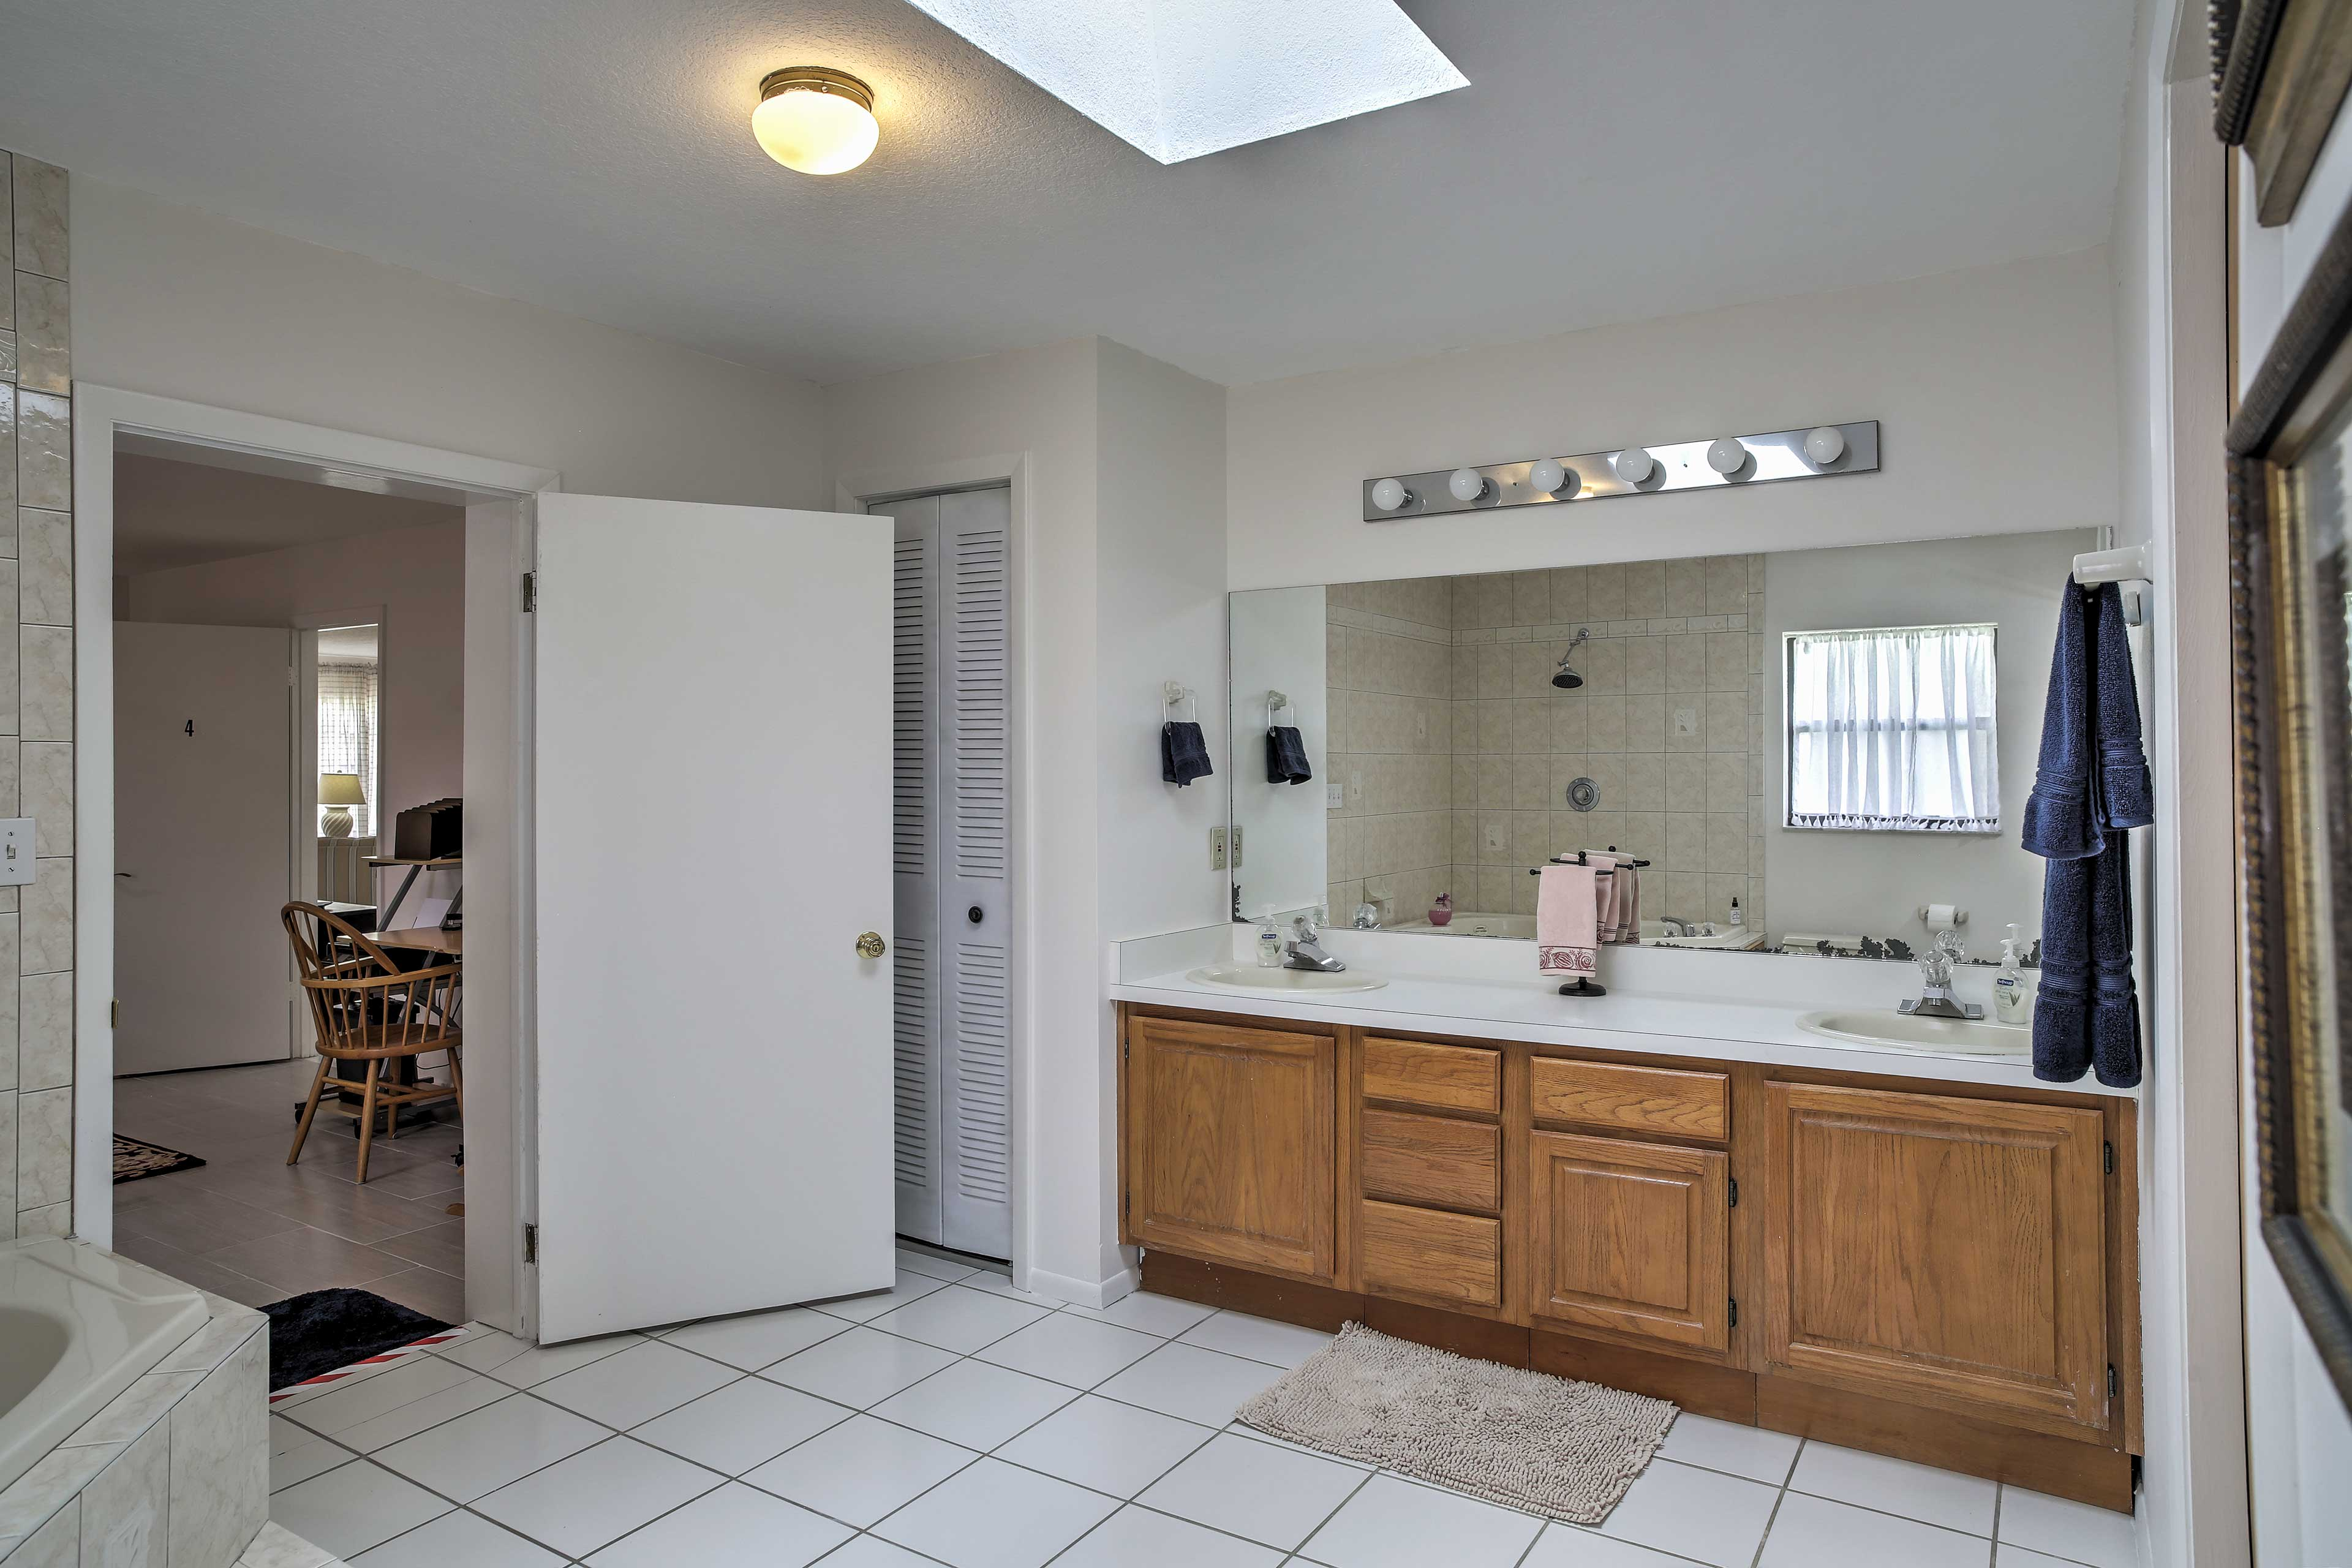 The full bathroom features double sinks.